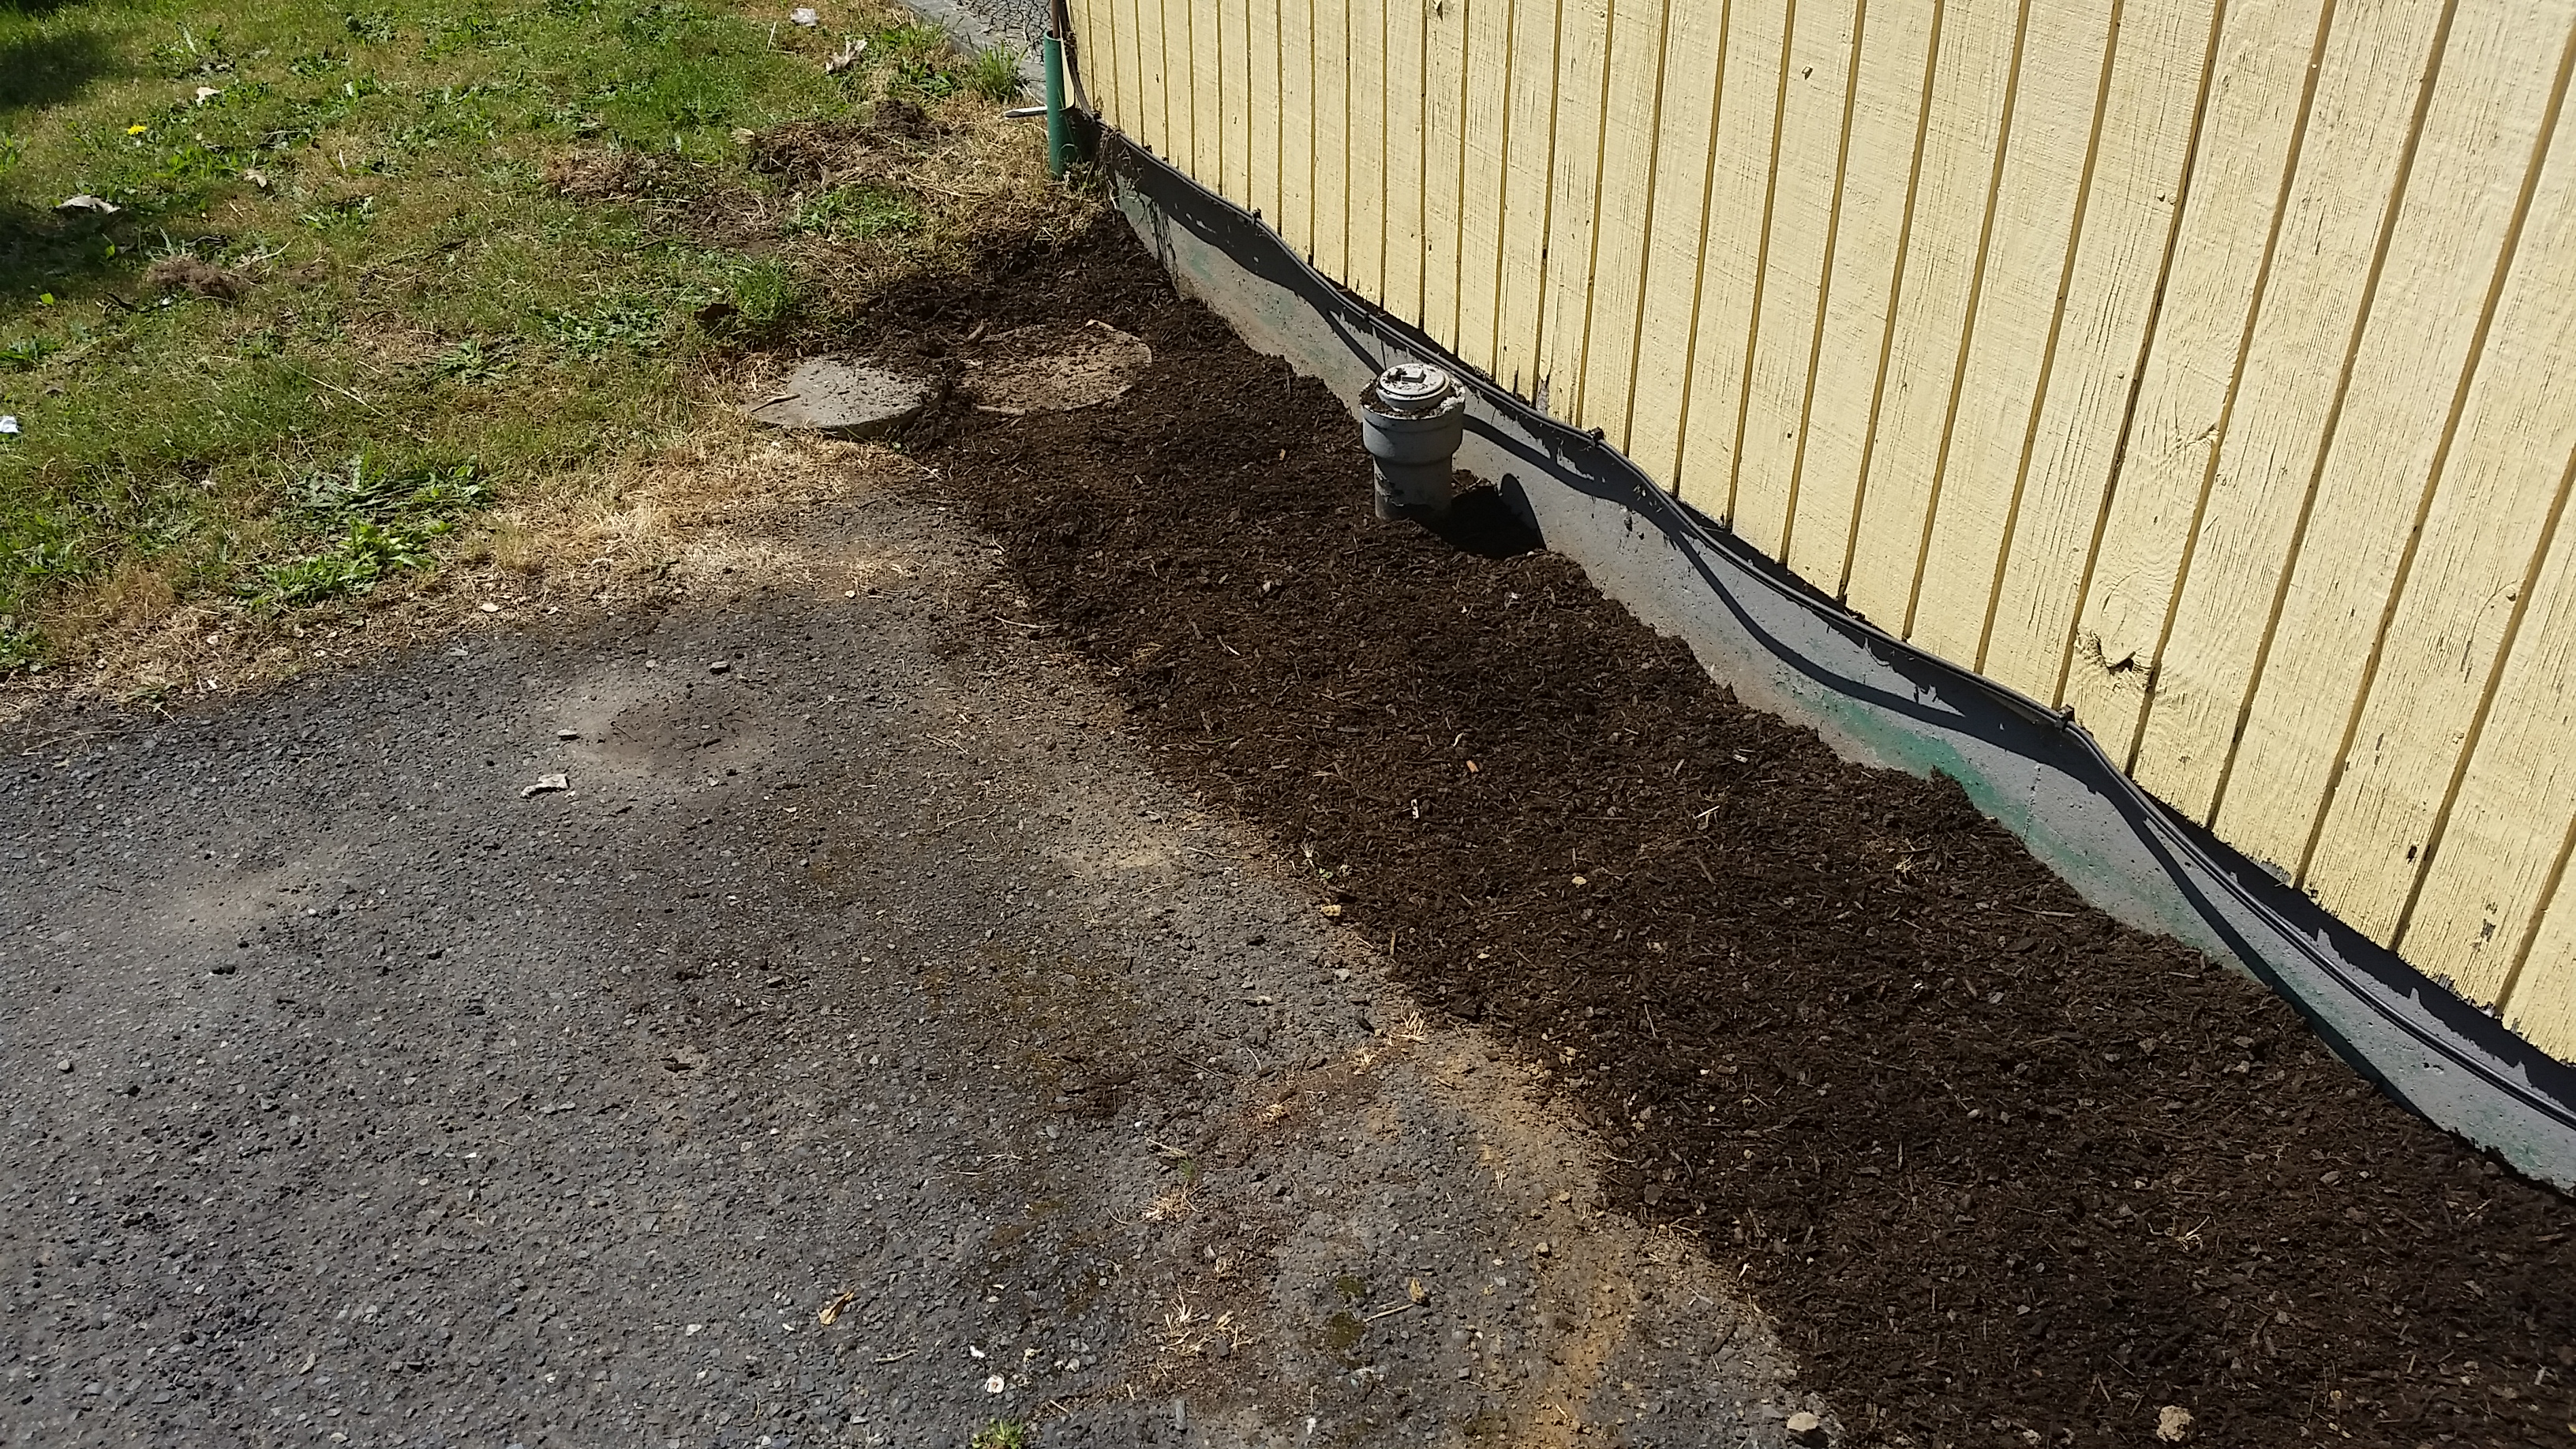 Ground cover after